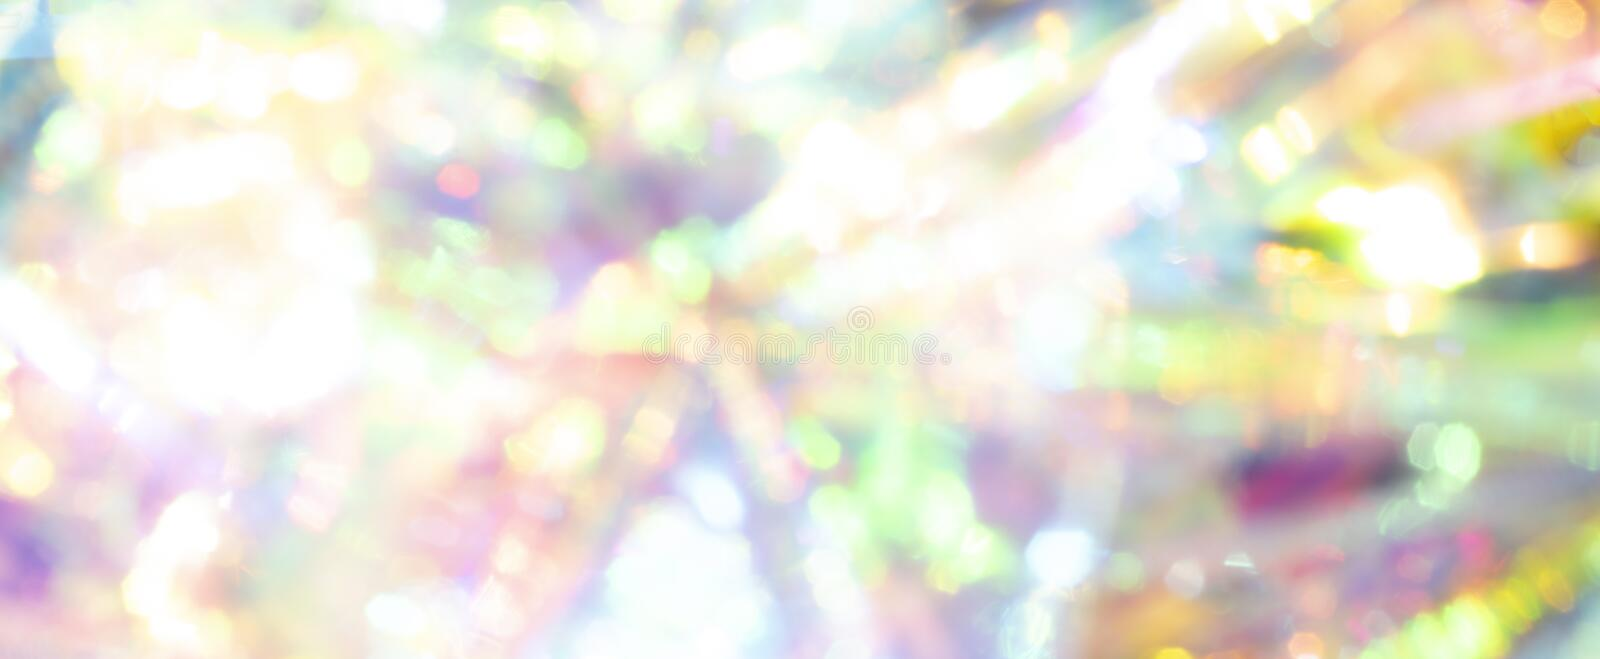 Light and beautiful blurred abstract holographic background. royalty free stock image